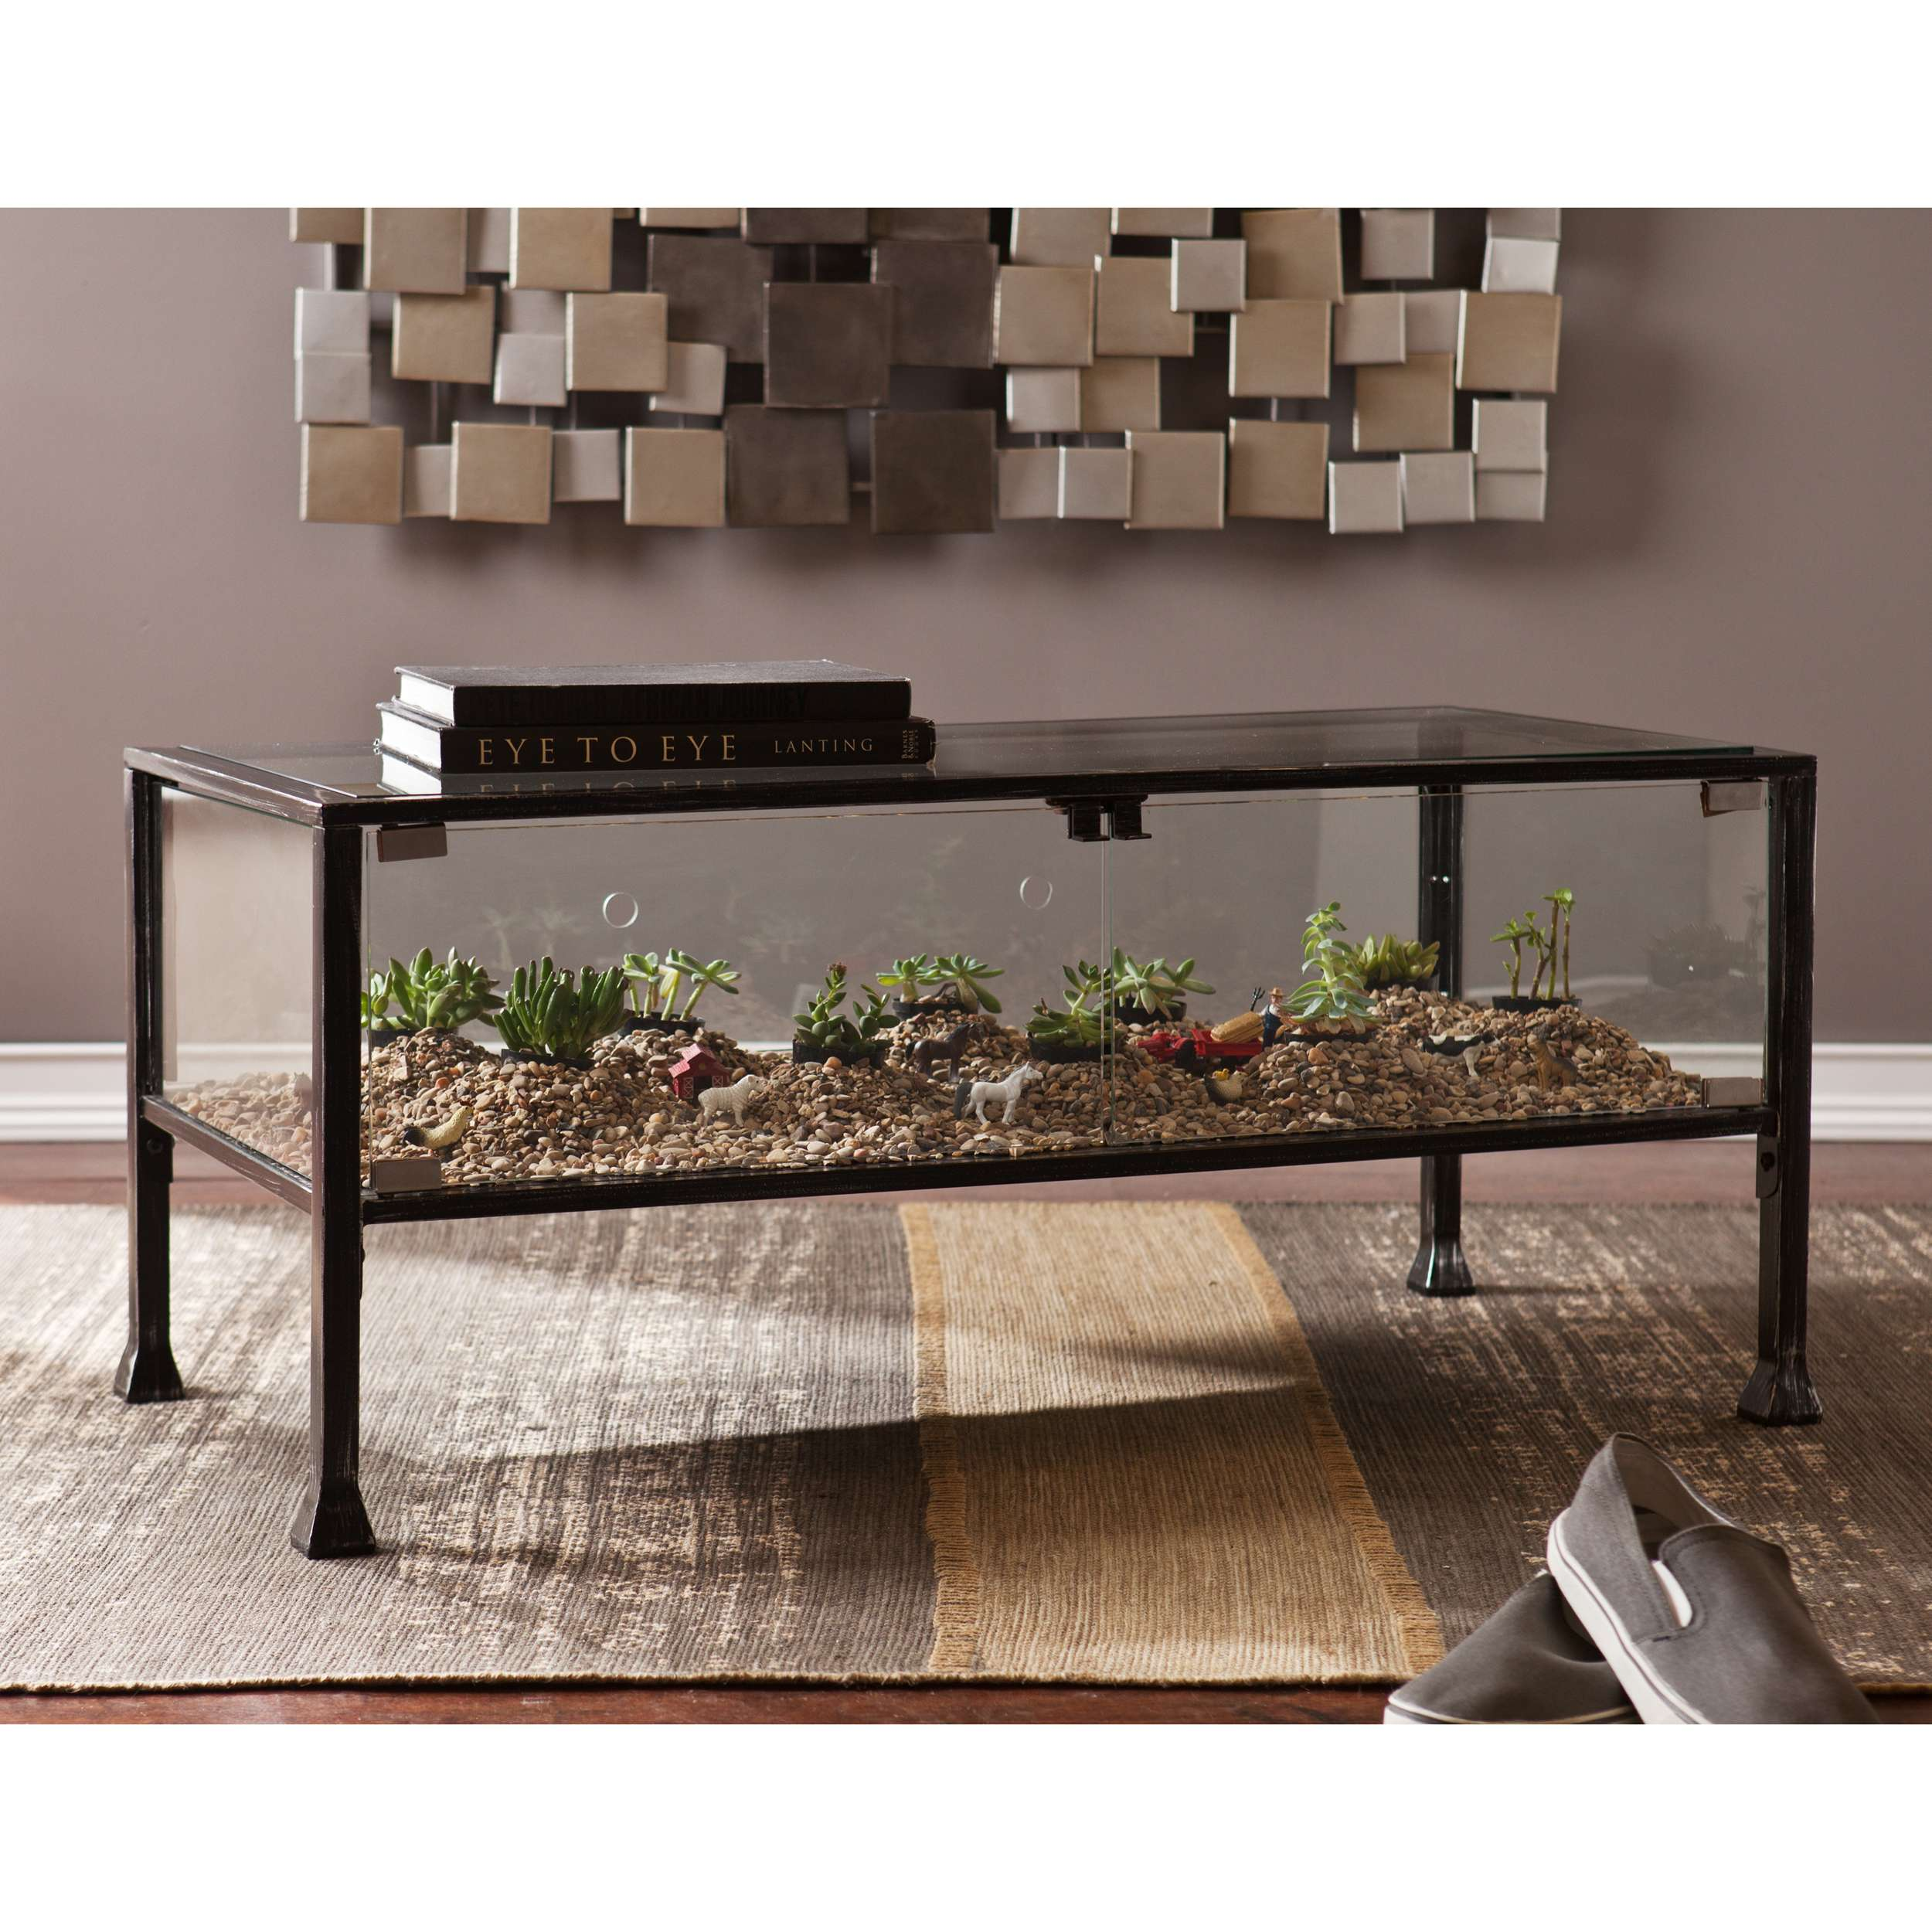 Discussion on this topic: Southern Enterprises Terrarium Display CurioConsole, southern-enterprises-terrarium-display-curioconsole/